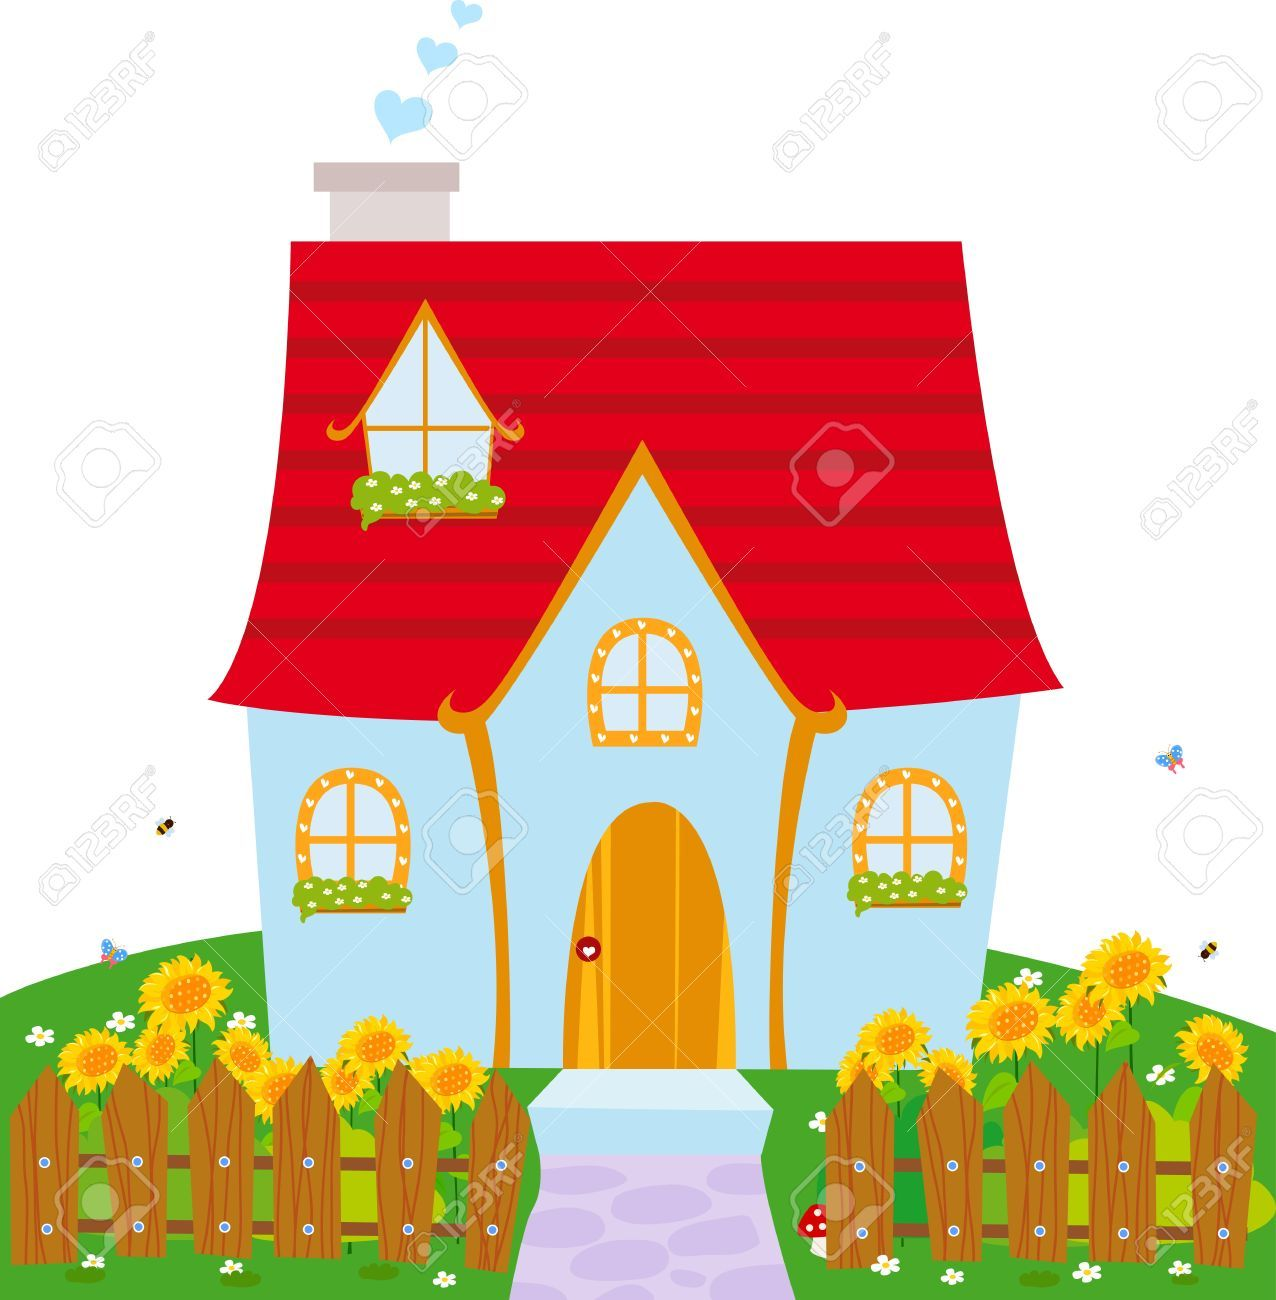 Haus clipart banner free stock Haus clipart free 1 » Clipart Portal banner free stock